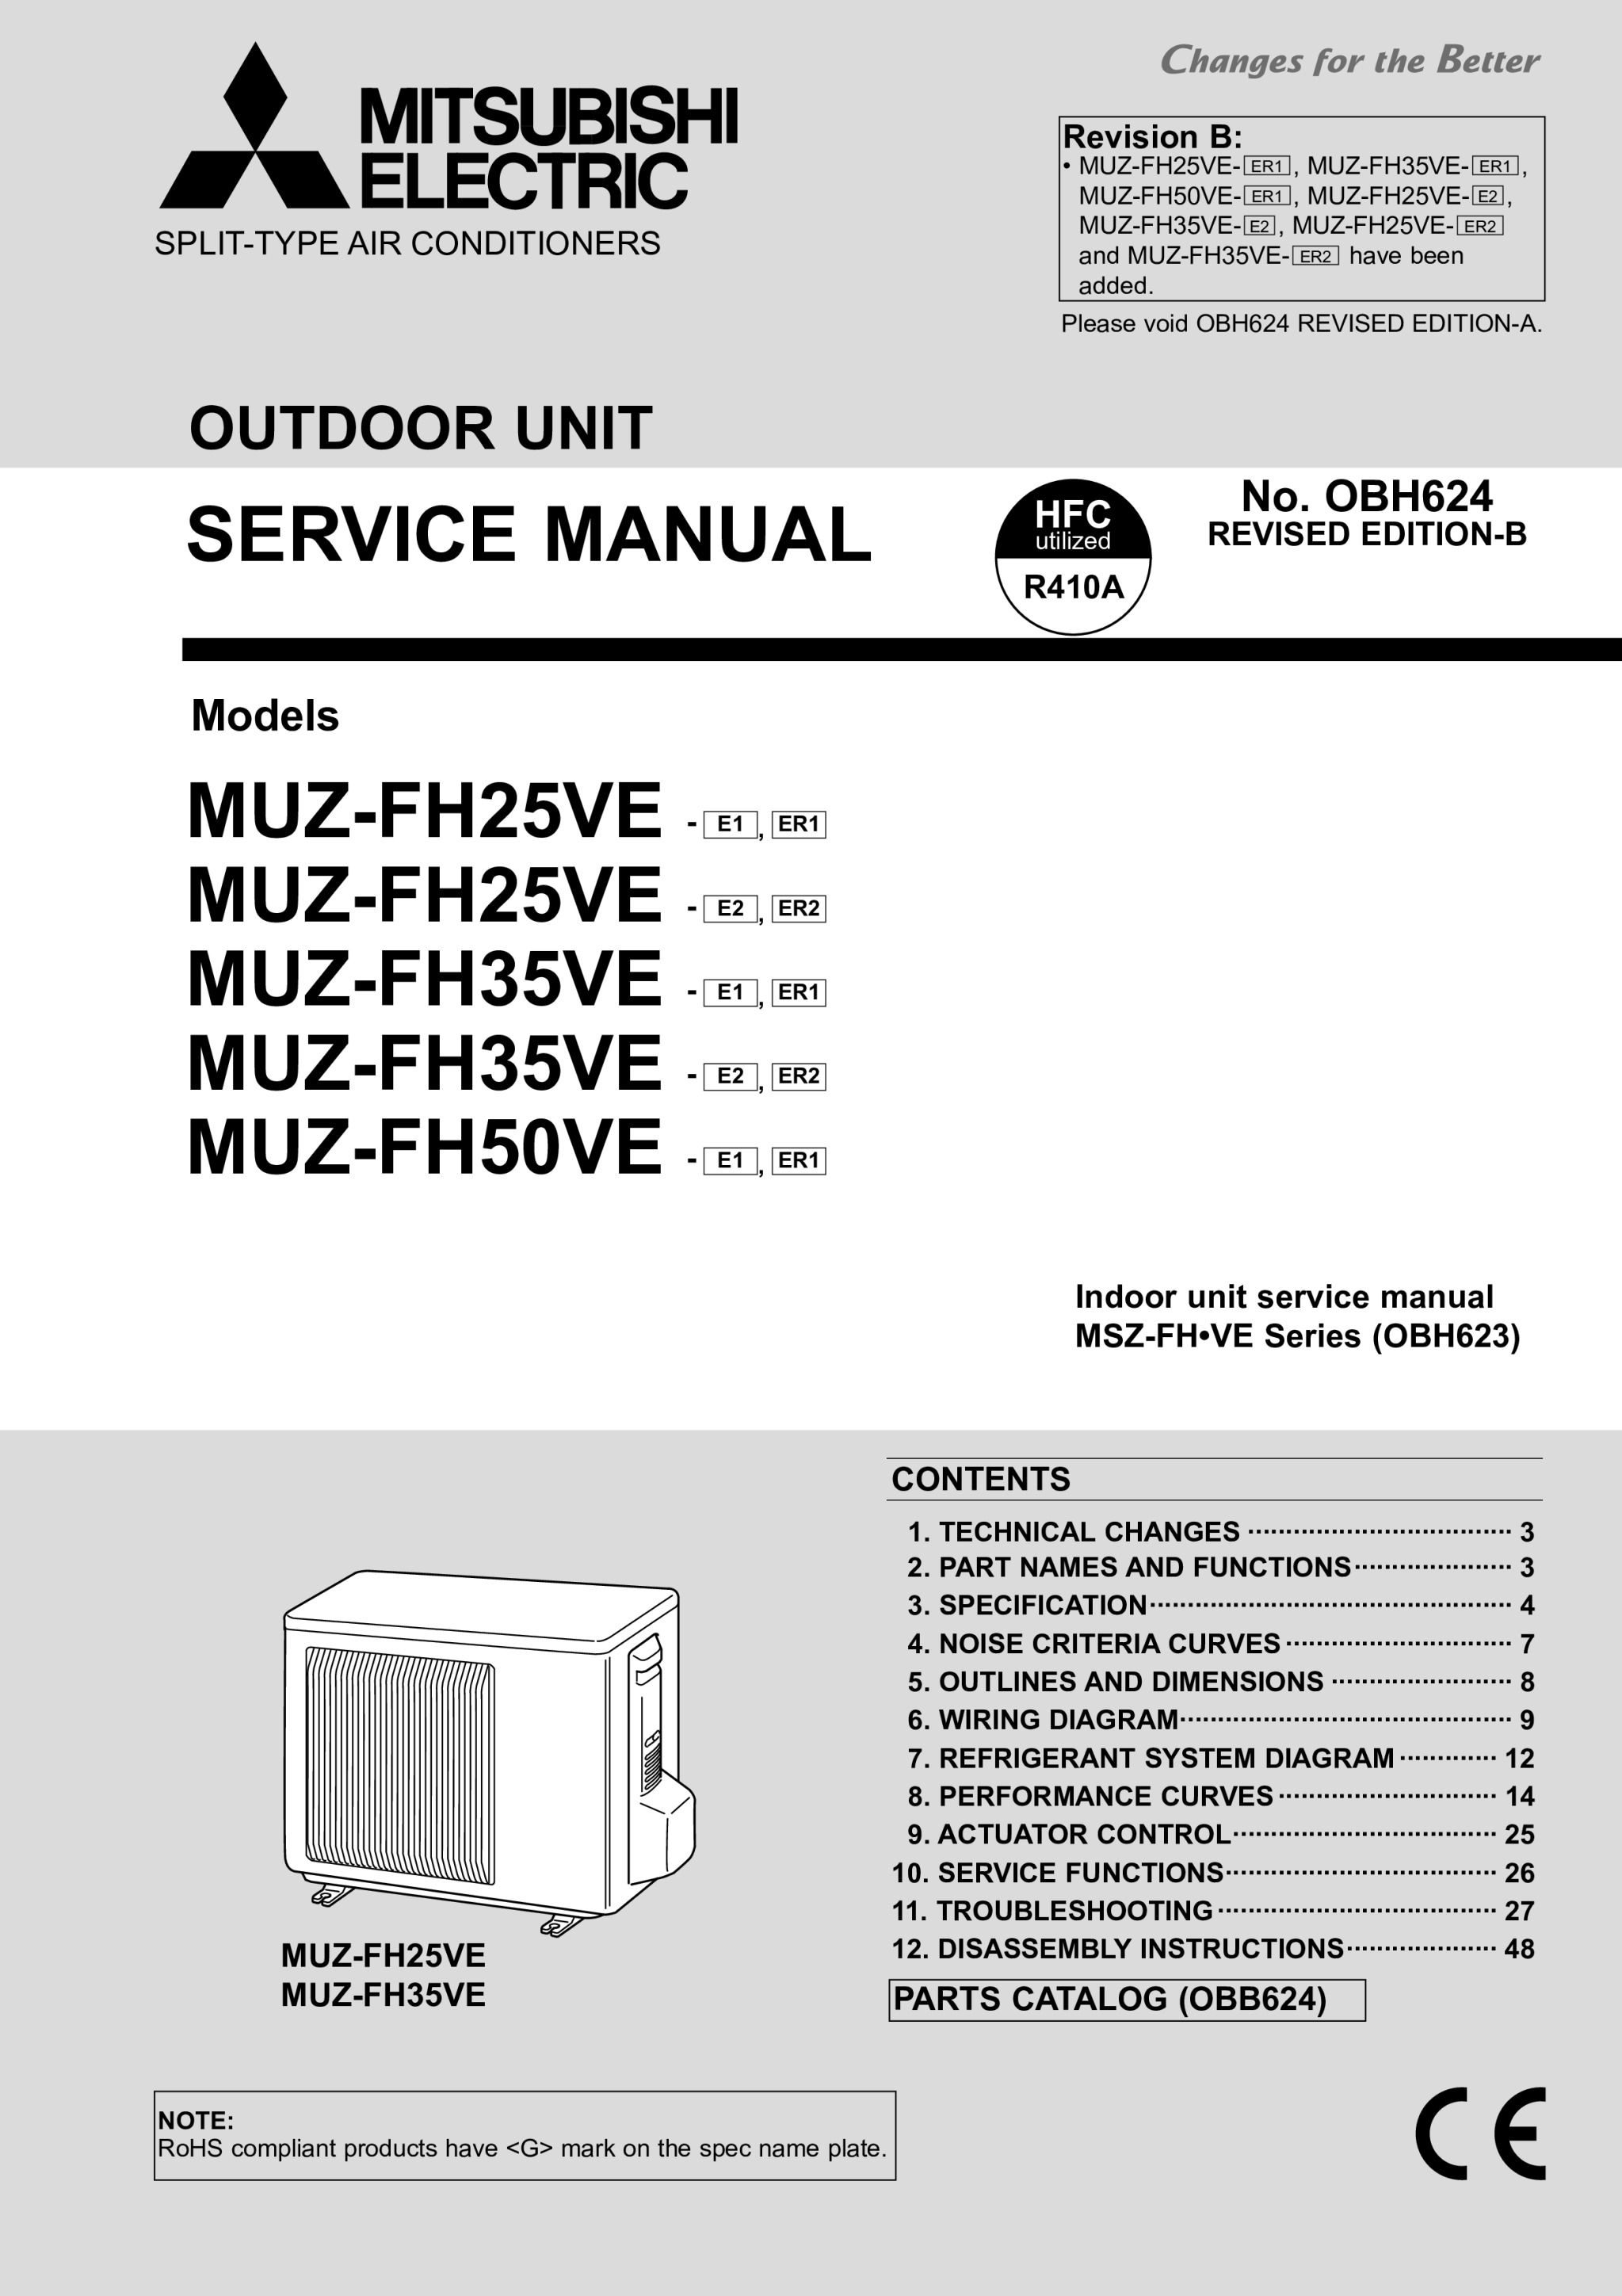 muz fh25 35 service manual obh624b mitsubishi electric rh library mitsubishielectric co uk mitsubishi electric mr. slim owners manual mitsubishi electric vrf service manual